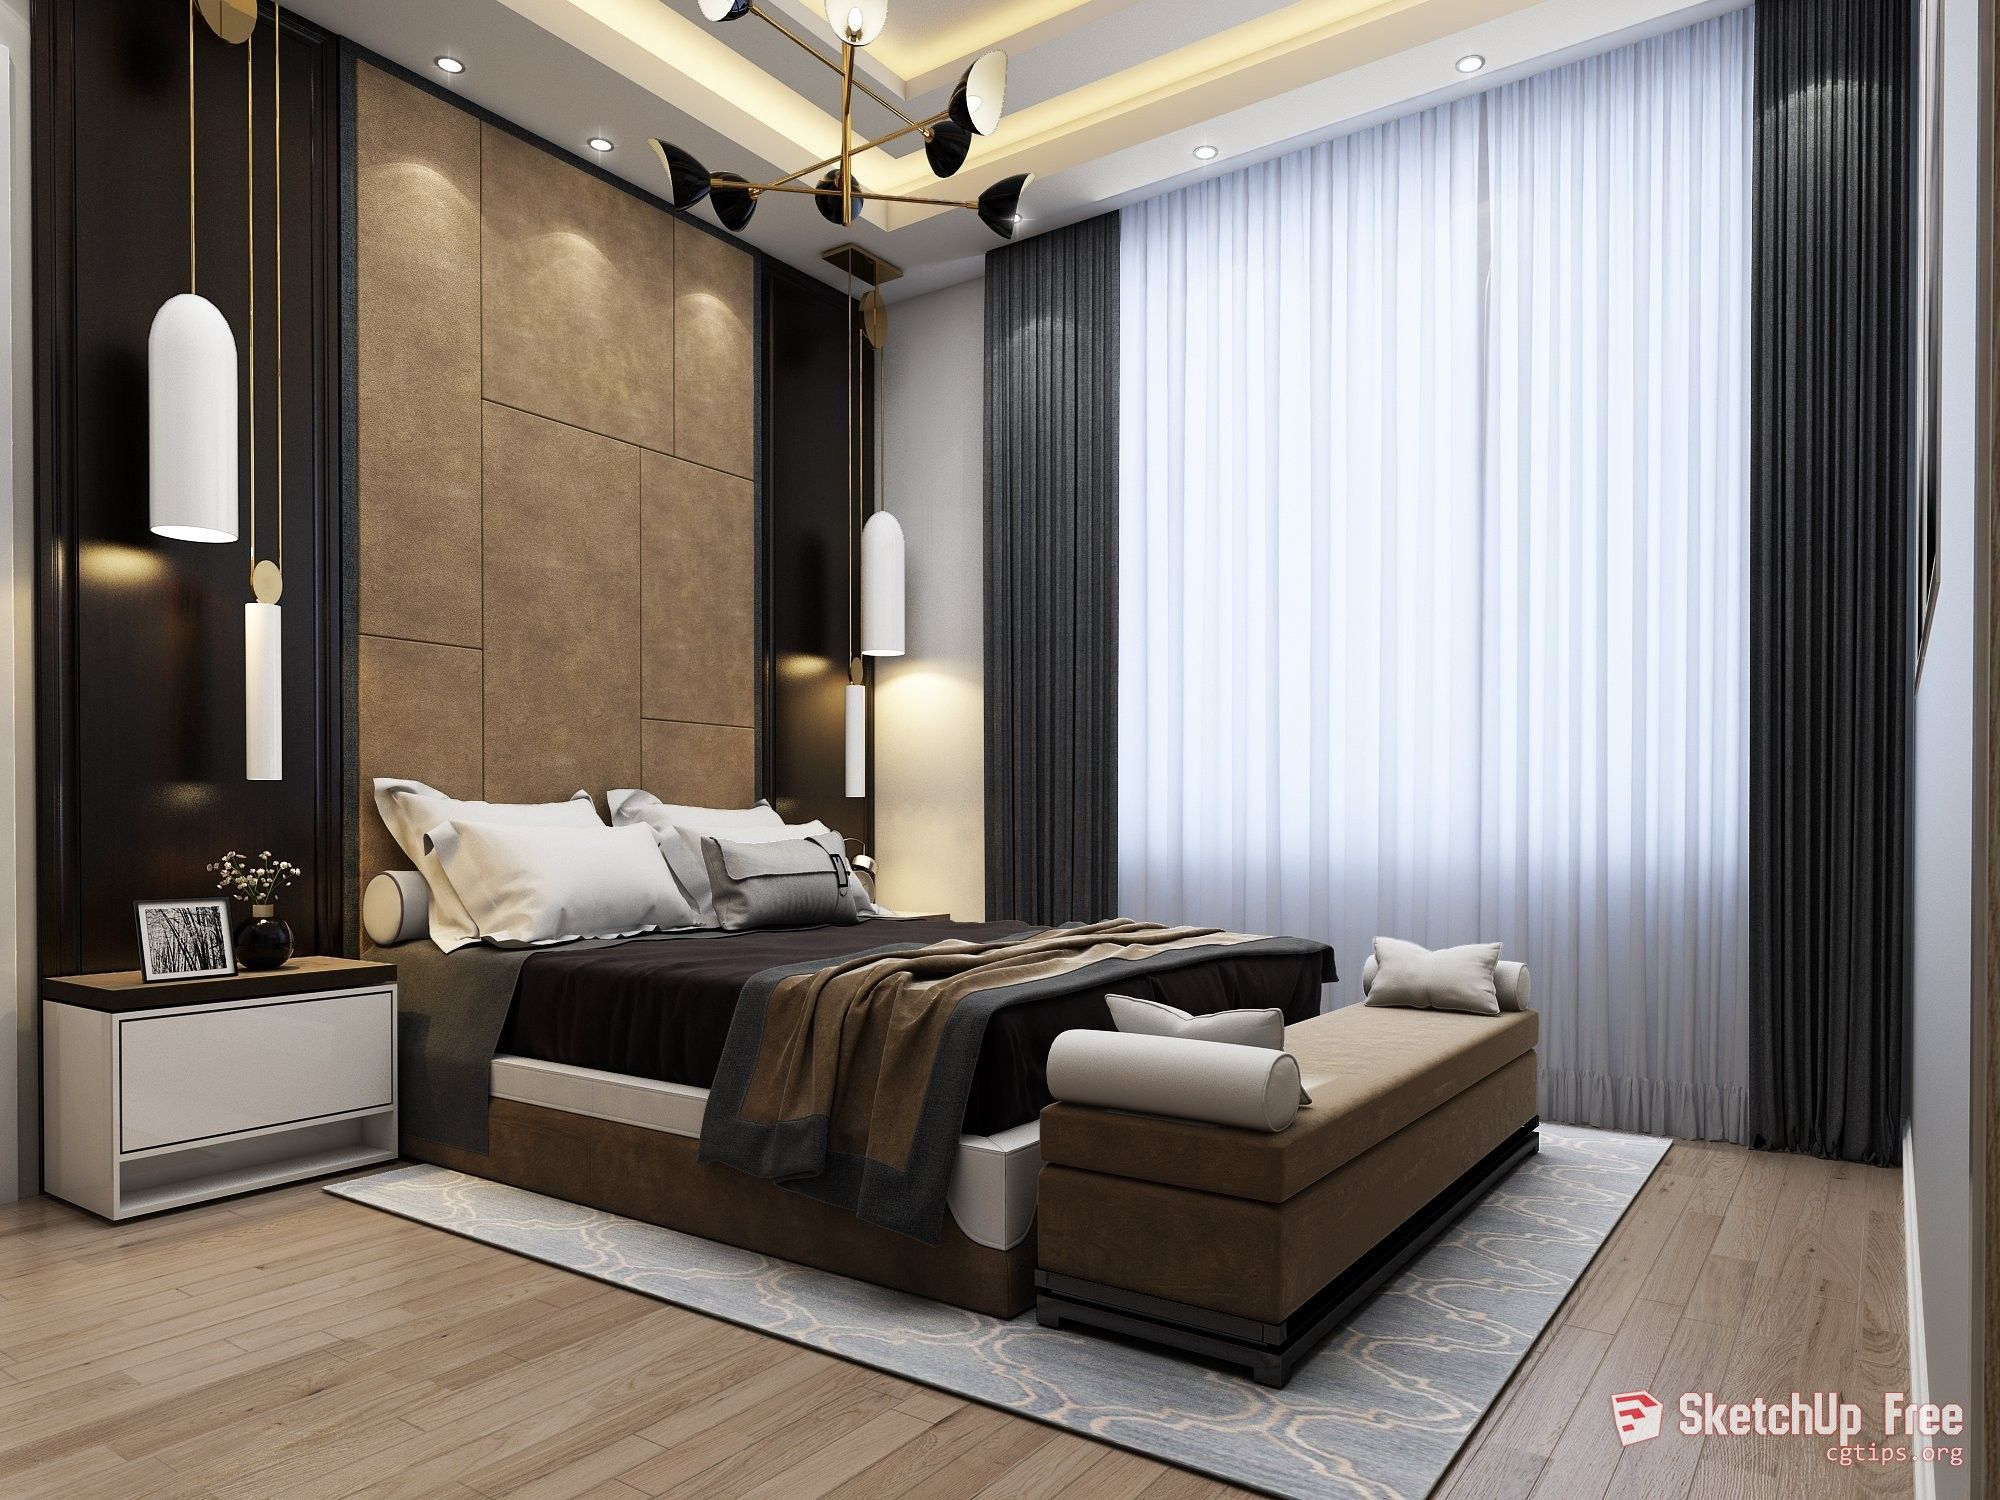 1942 Interior Bedroom Scene Sketchup Model Free Download Modern